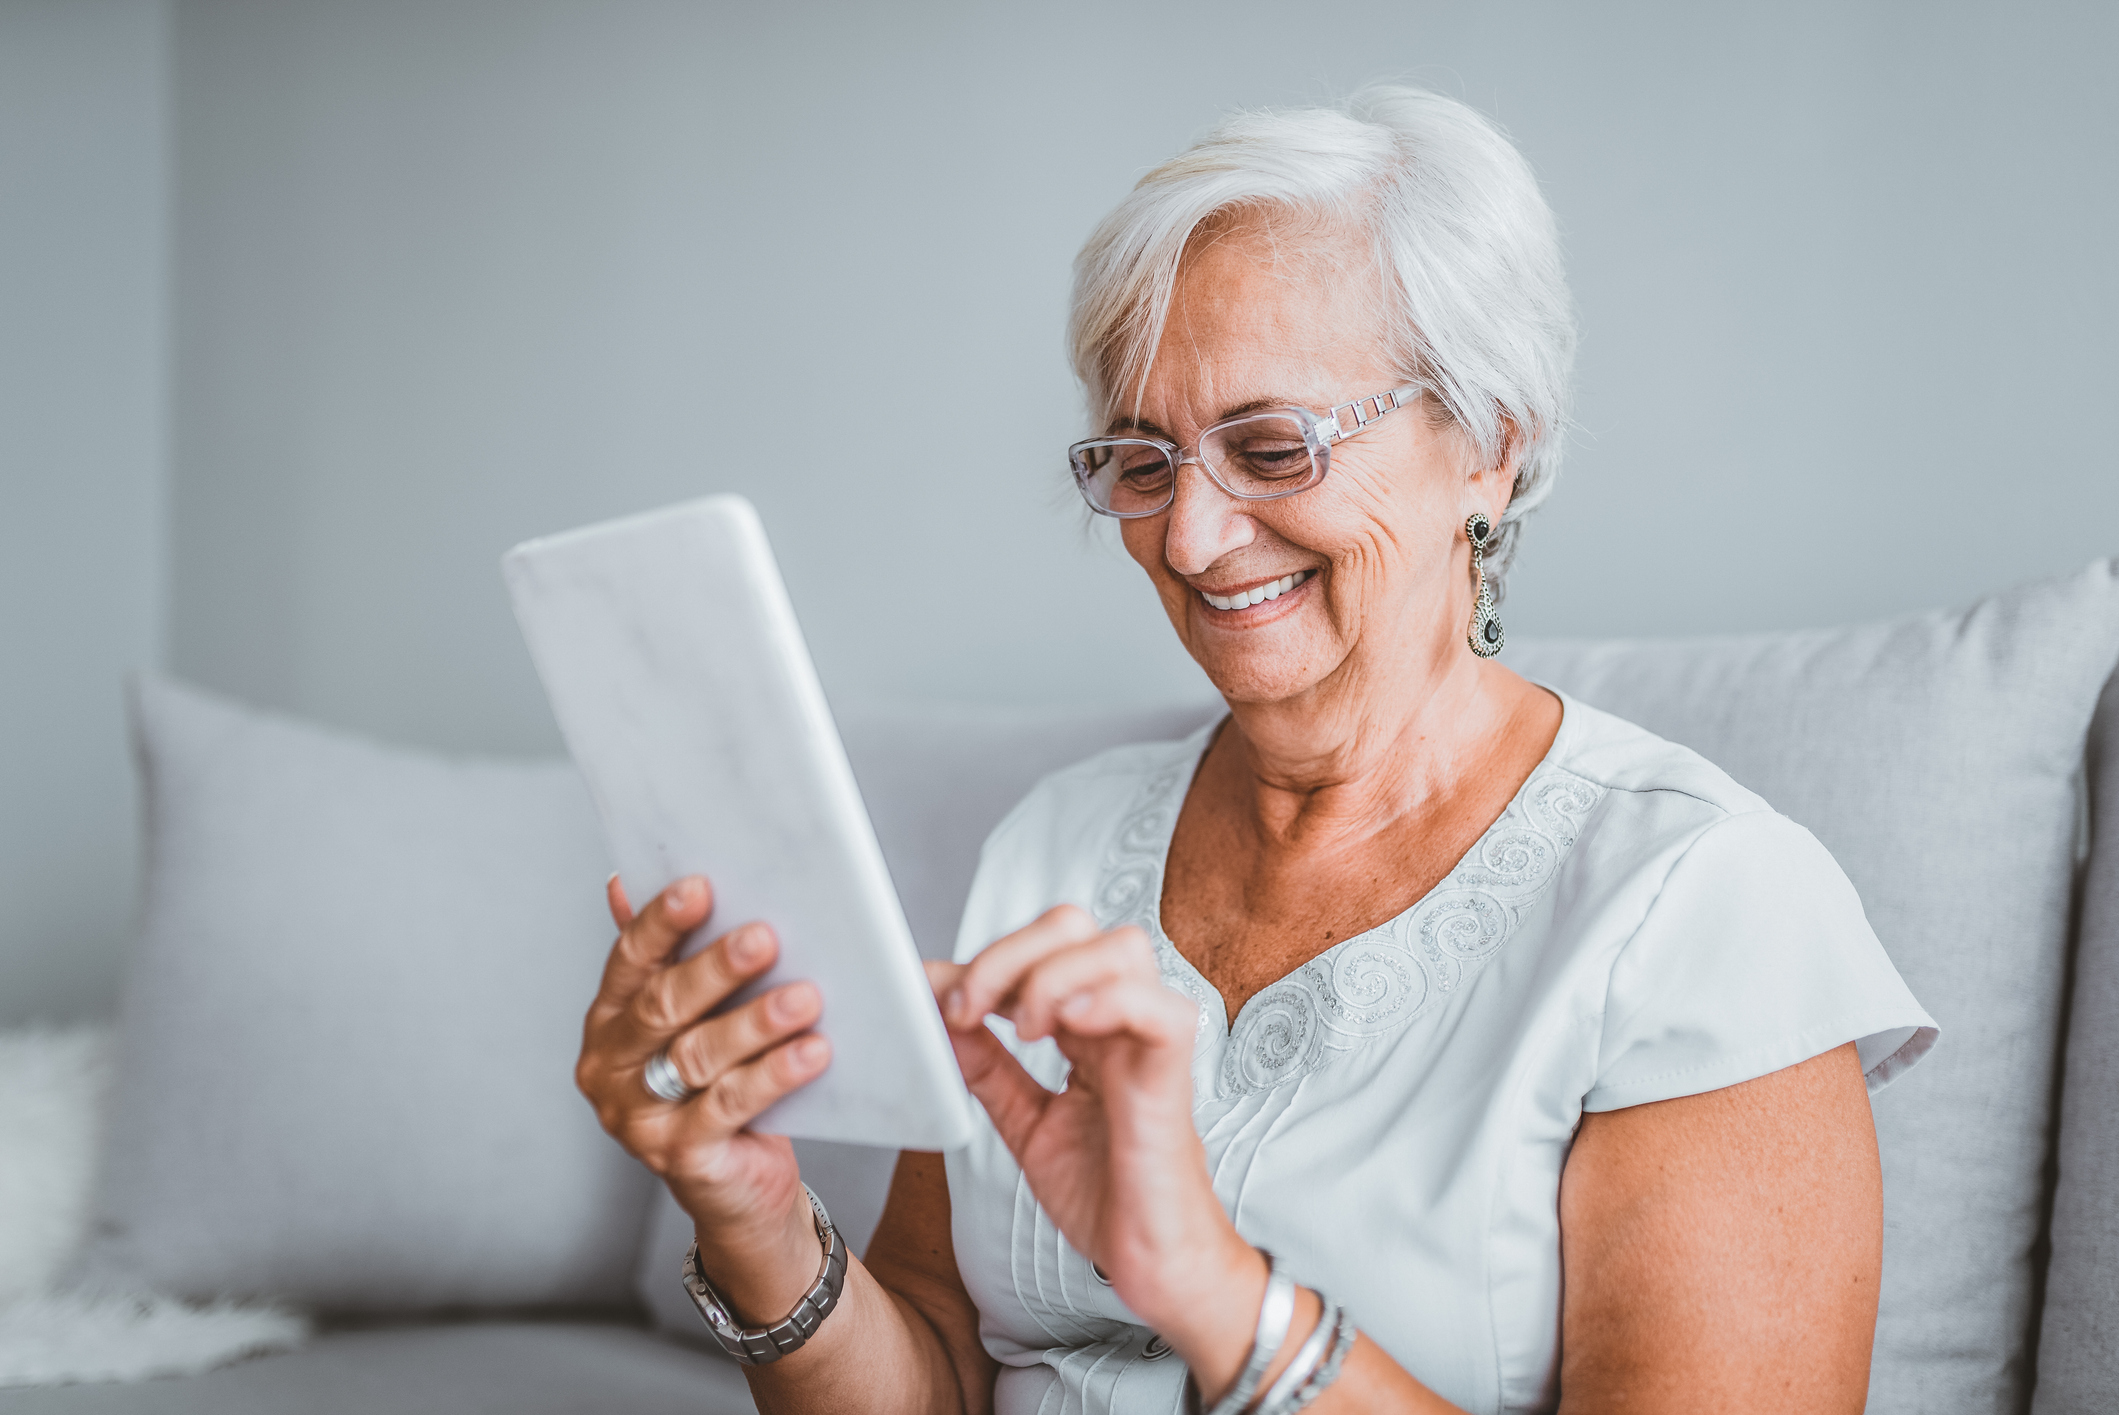 A senior lady uses her iPad to connect with friends and family.